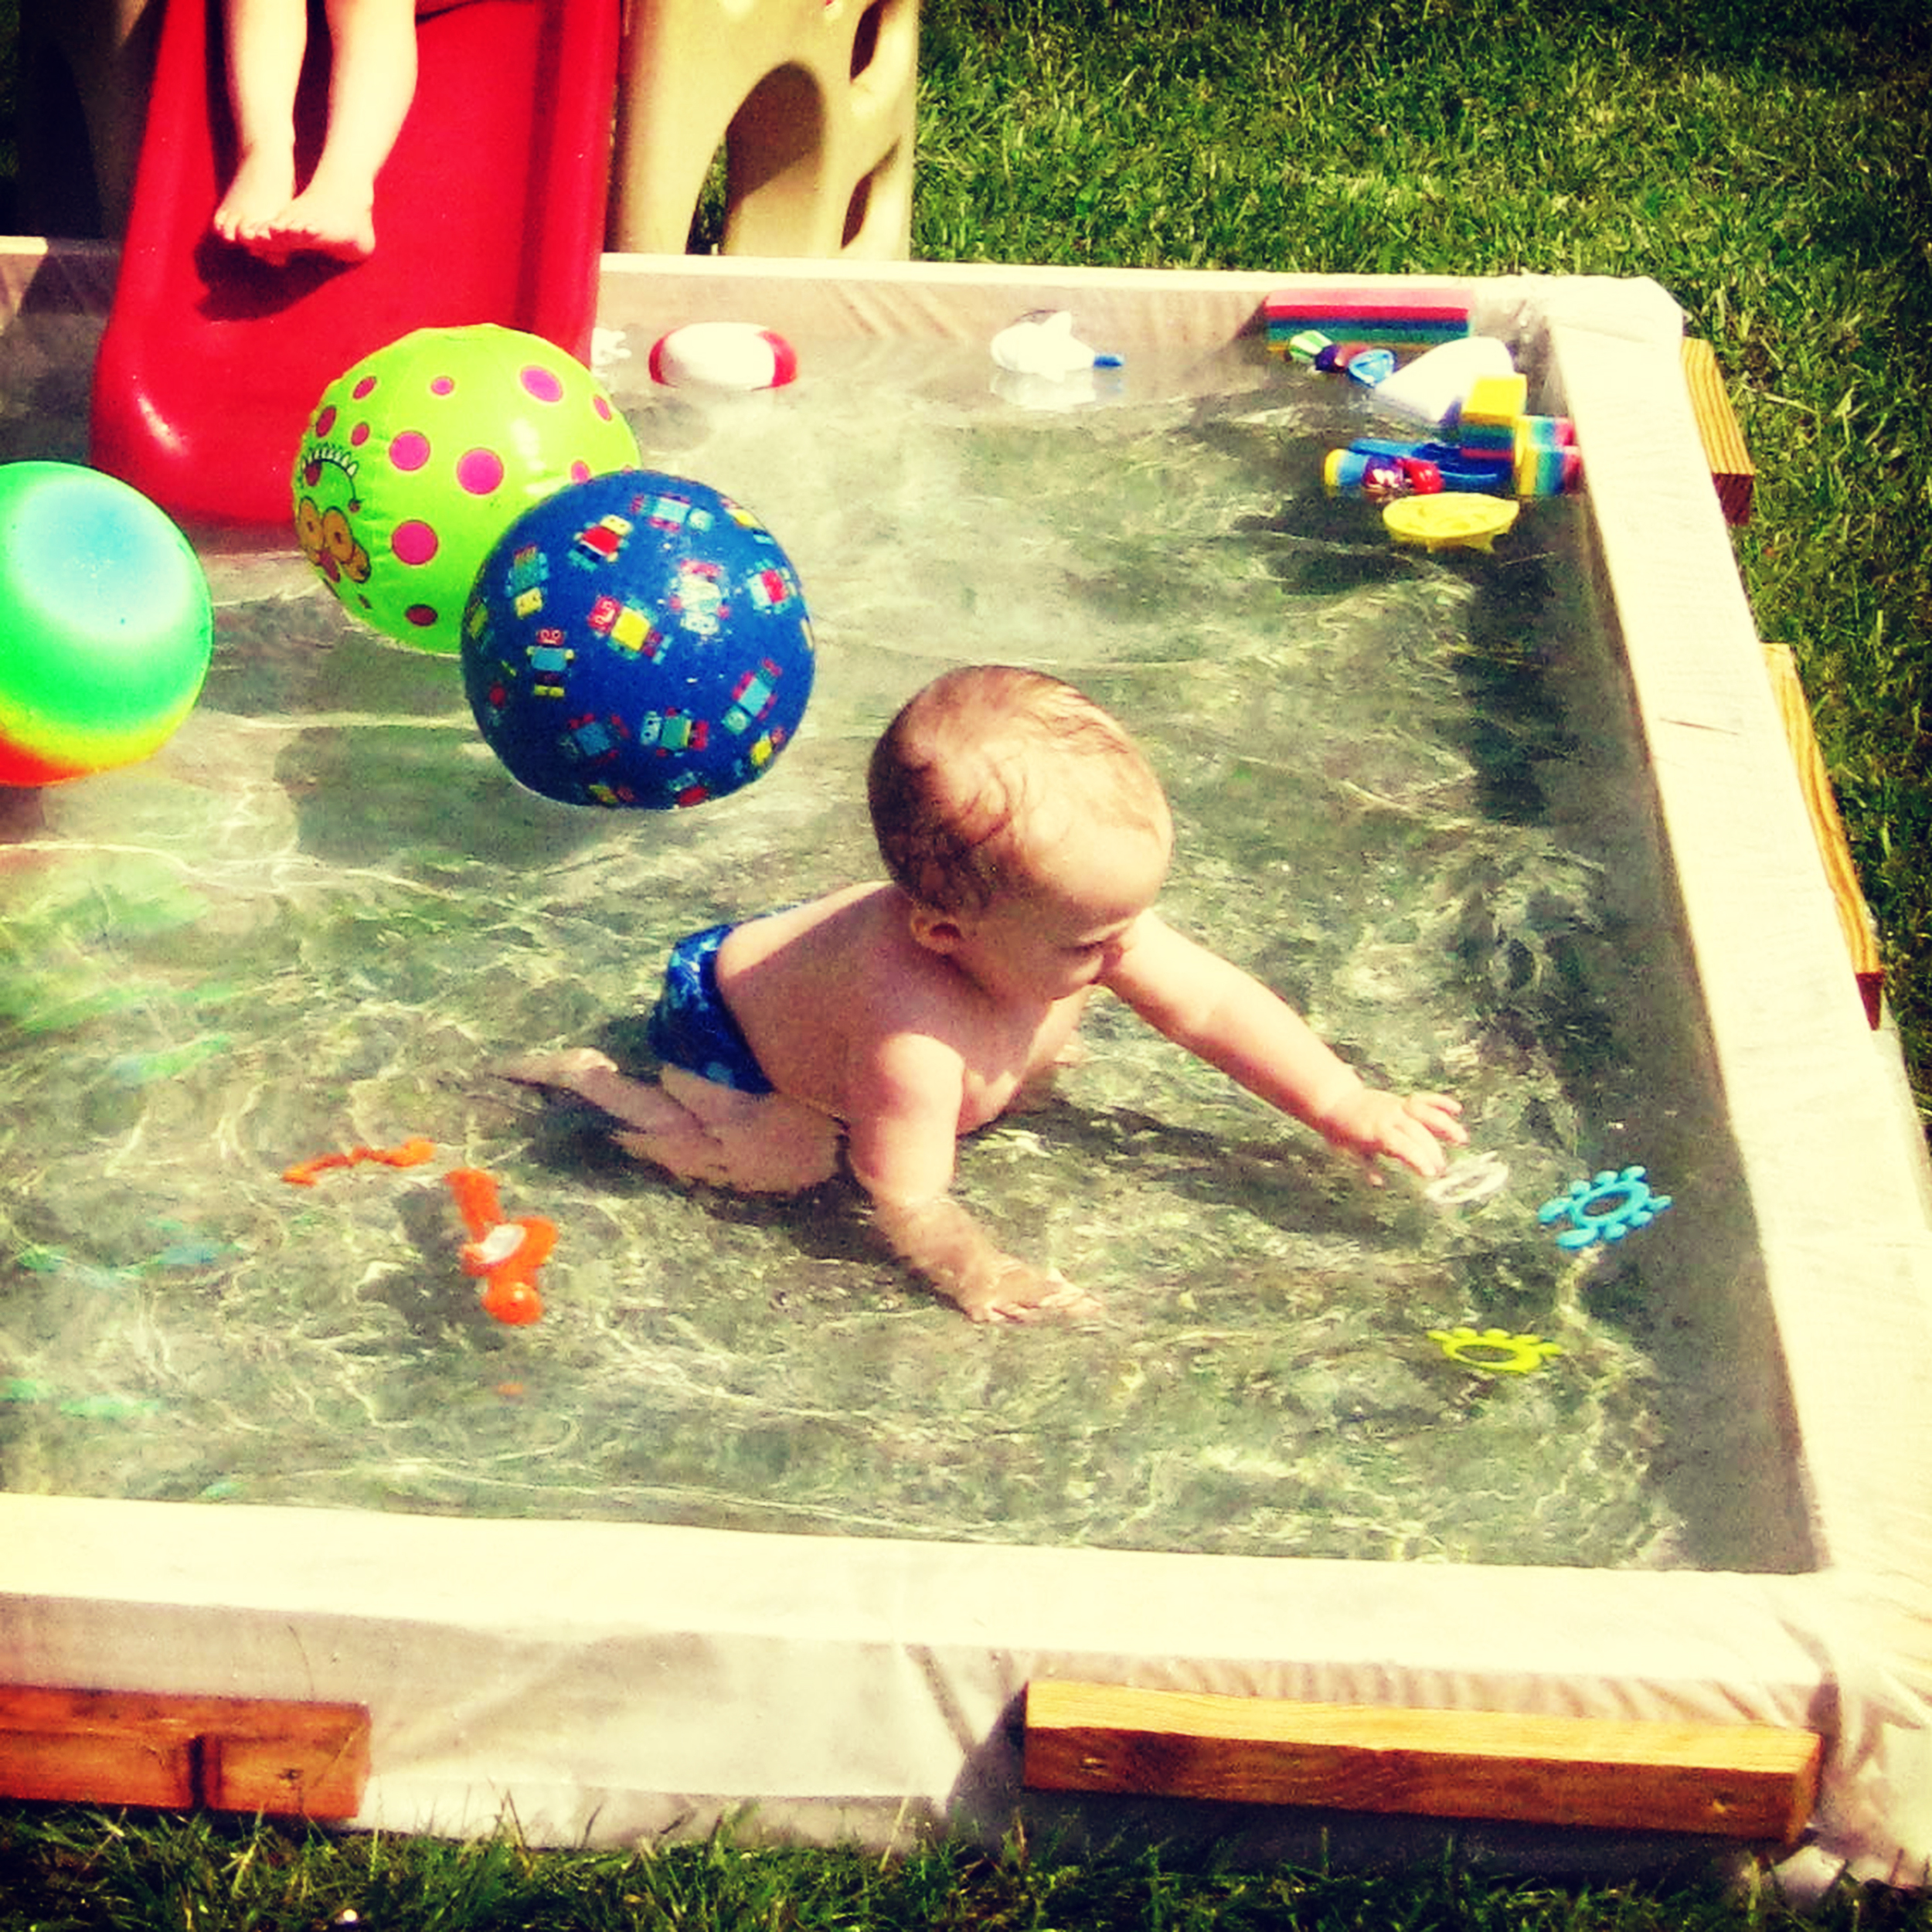 My son playing in the kiddie pool my husband built.